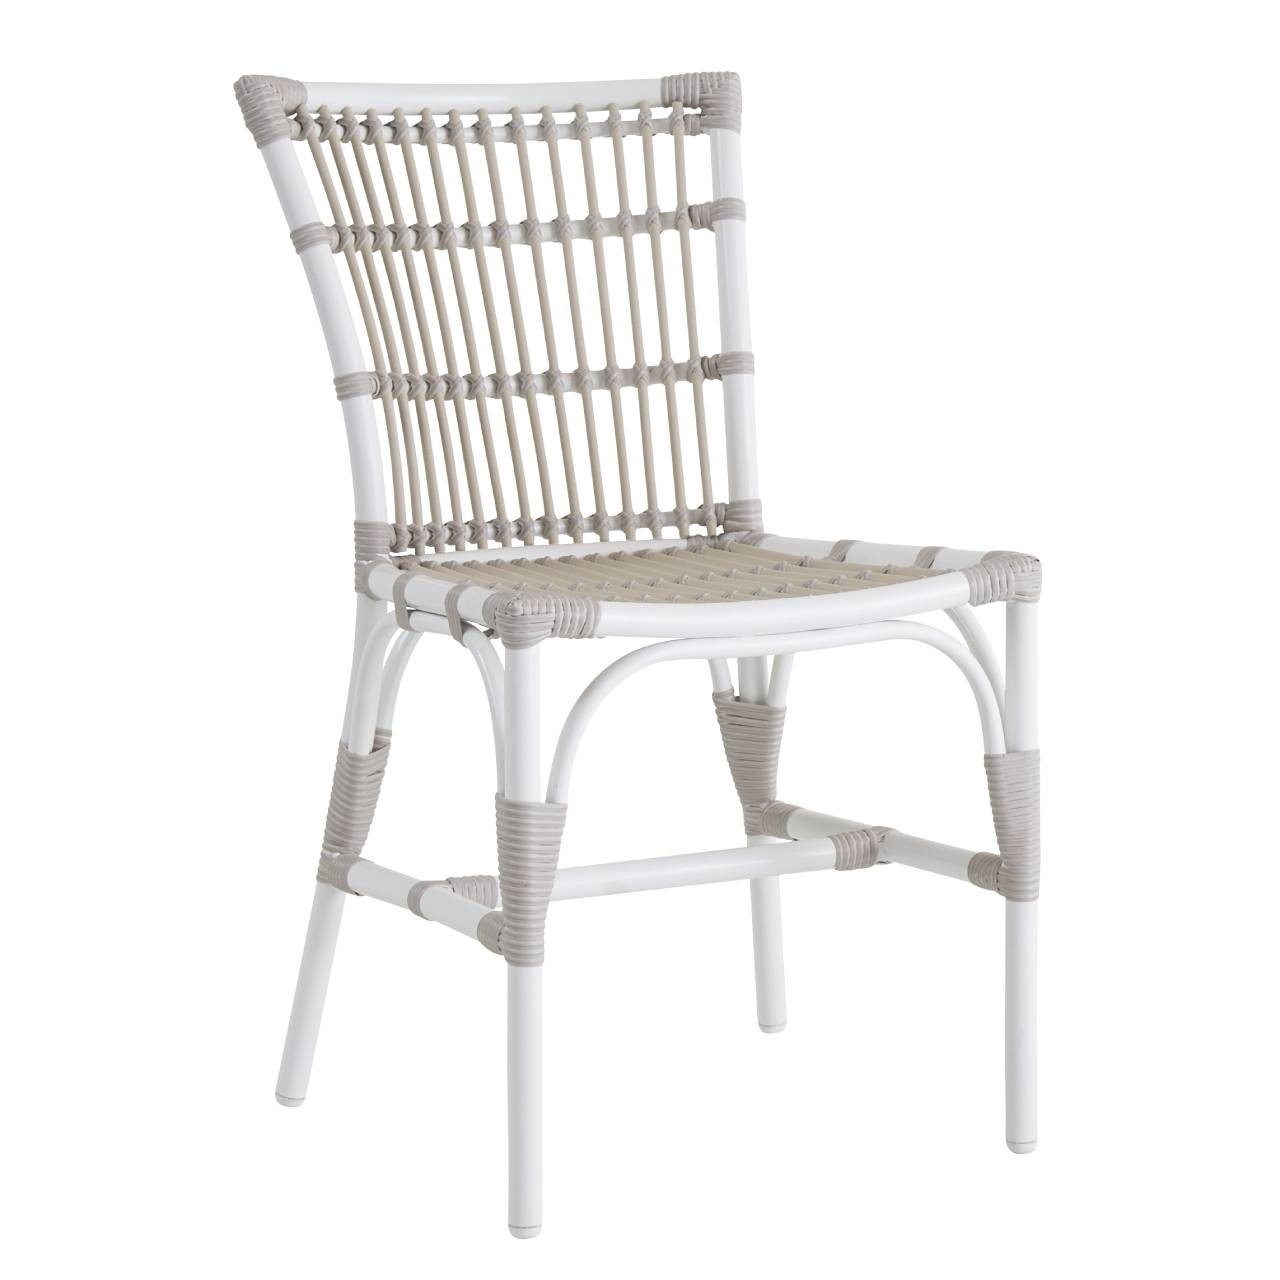 Awesome Elisabeth Chair Exterior Ibusinesslaw Wood Chair Design Ideas Ibusinesslaworg